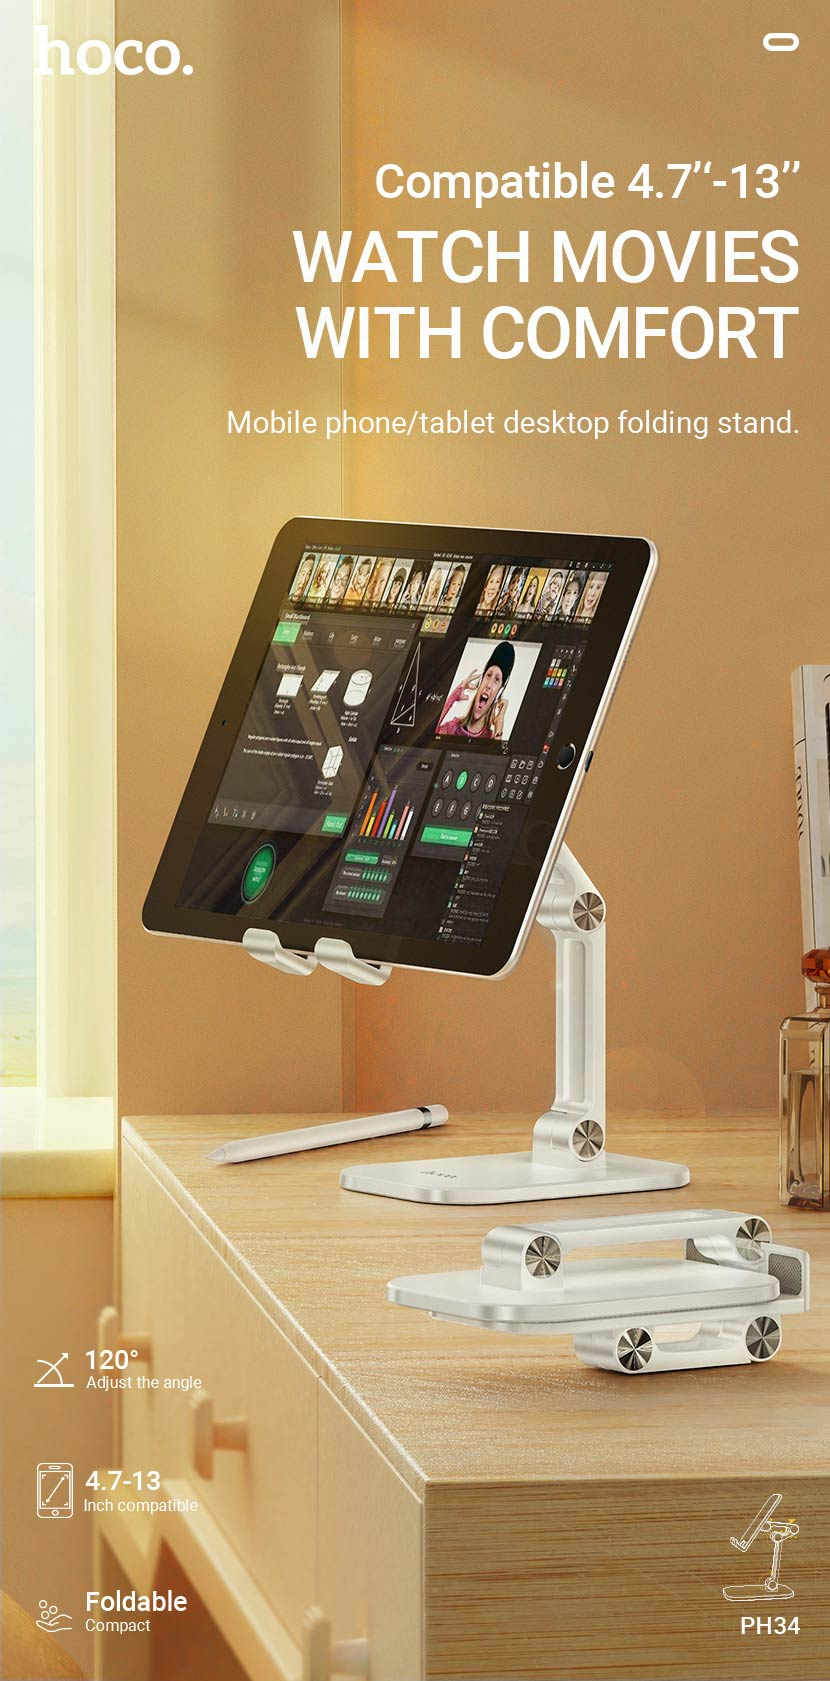 hoco news ph34 excelente double folding desktop stand en